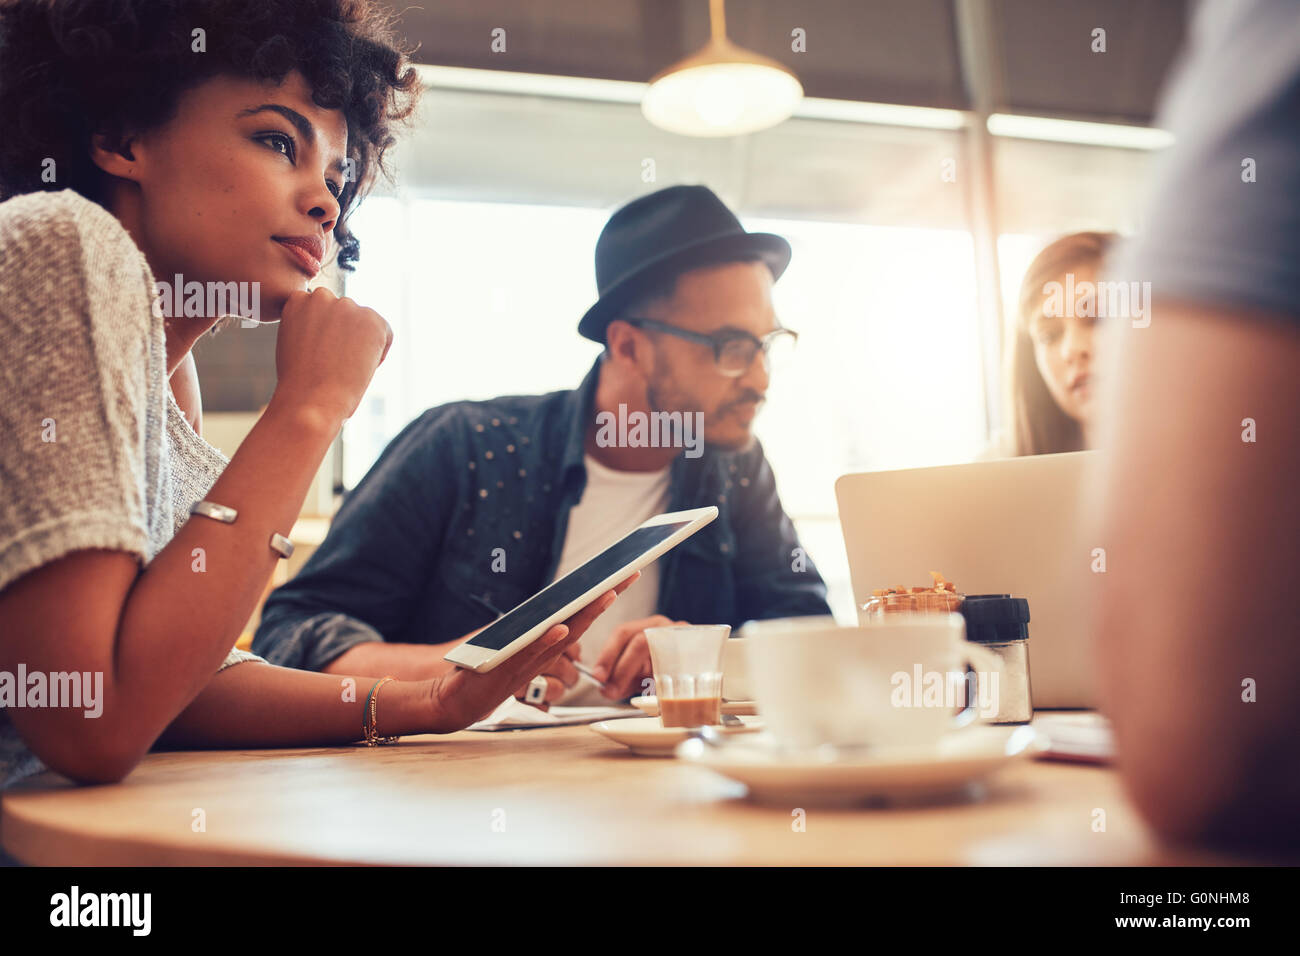 Close up portrait of  african woman with digital tablet and people in background at a cafe table. Young friends - Stock Image